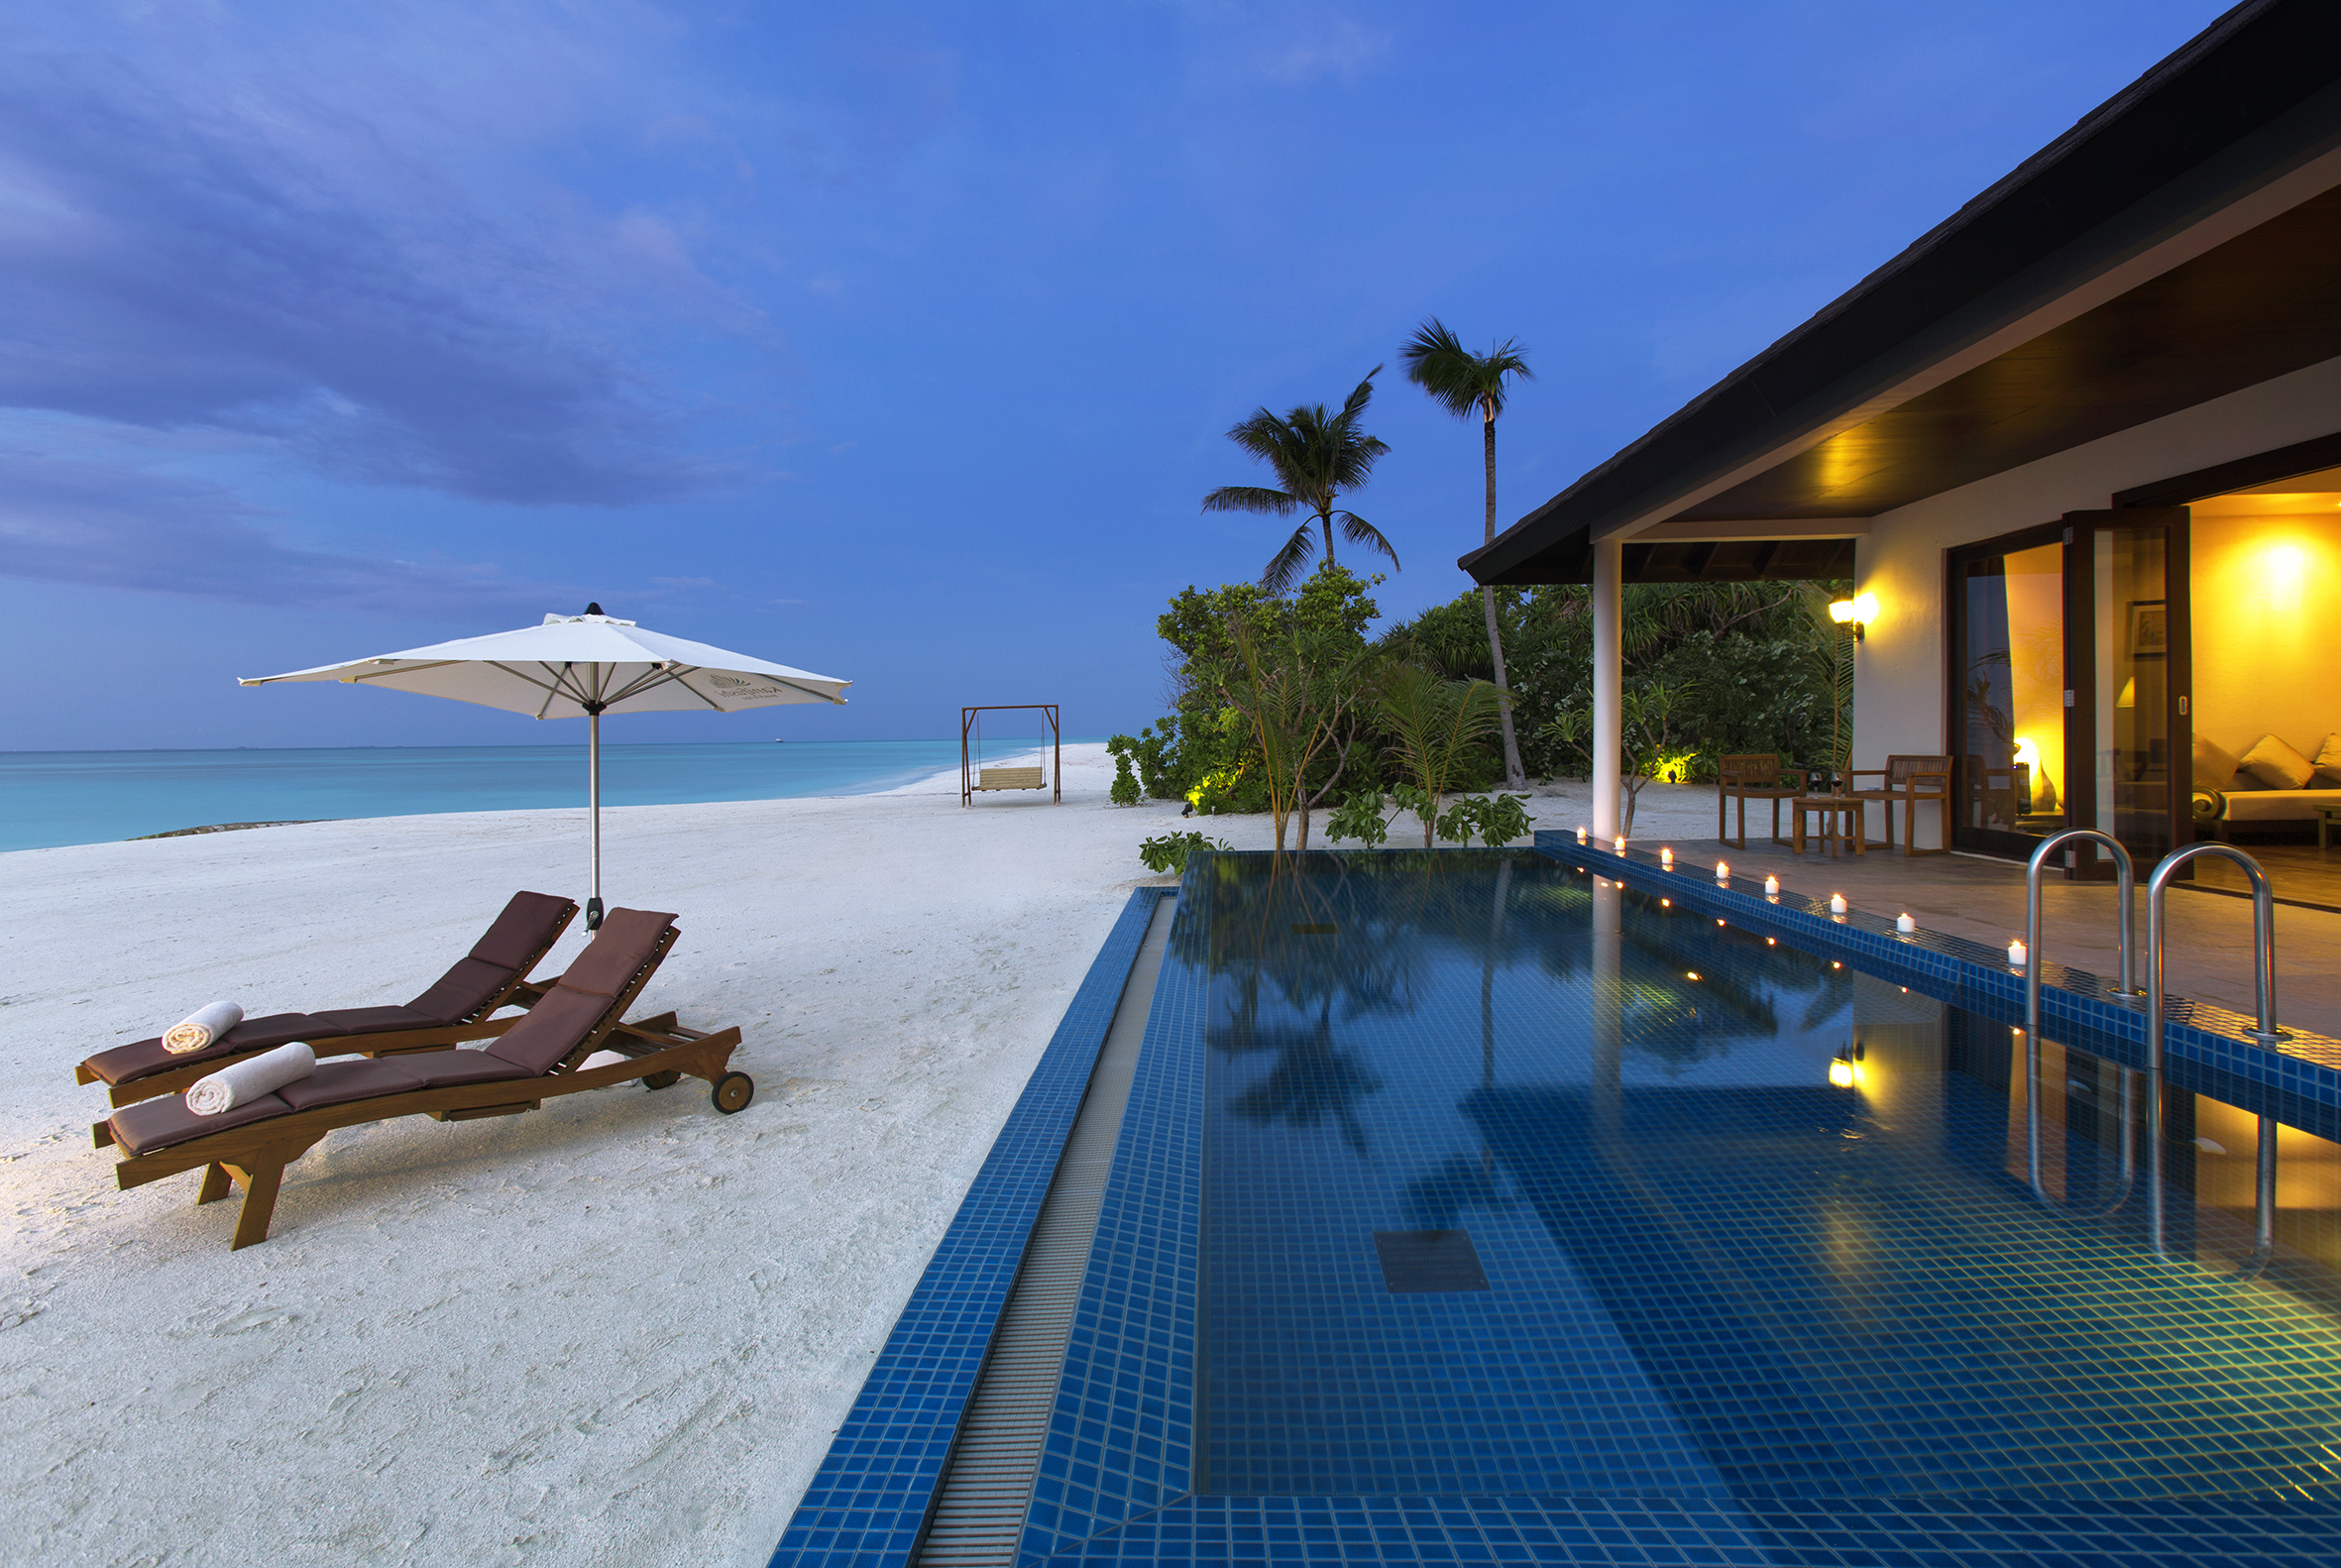 SUNSET-POOL-VILLA-AT-DUSK-WITH-SWING-AND-SANDBANK-IN-BACKGROUND-1